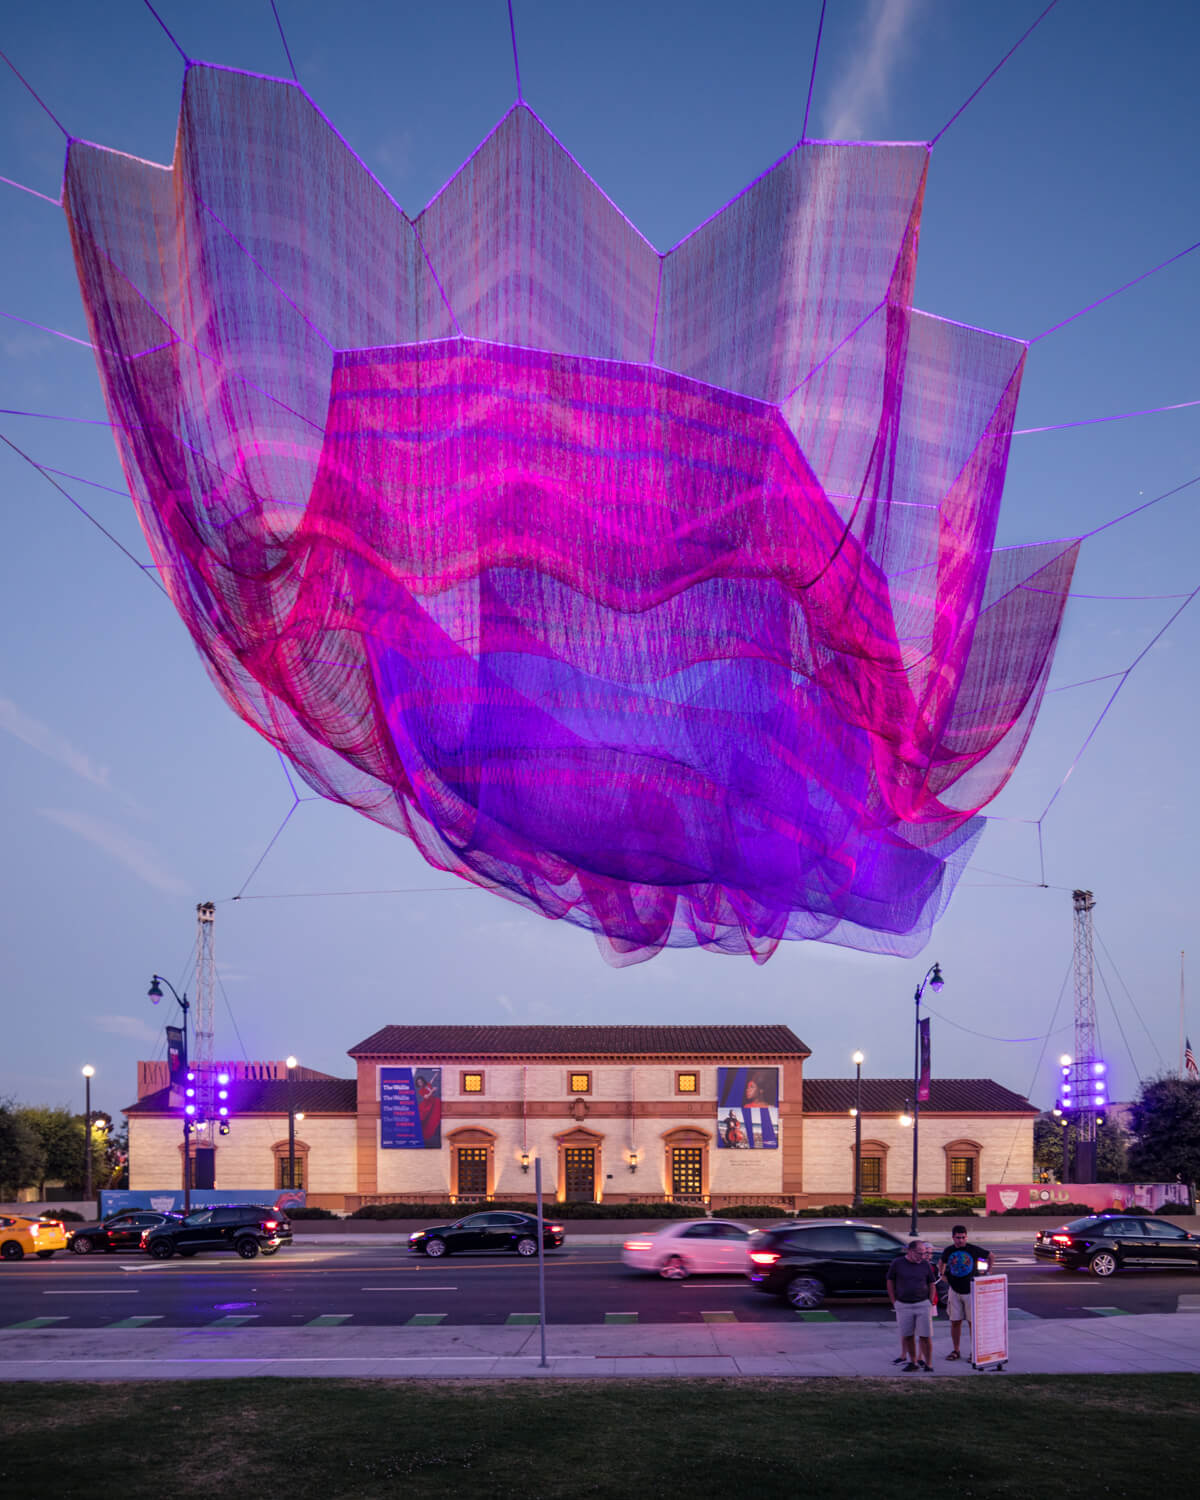 1.78 Beverly Hills, a sculpture in Janet Echelman's Earthtime Series